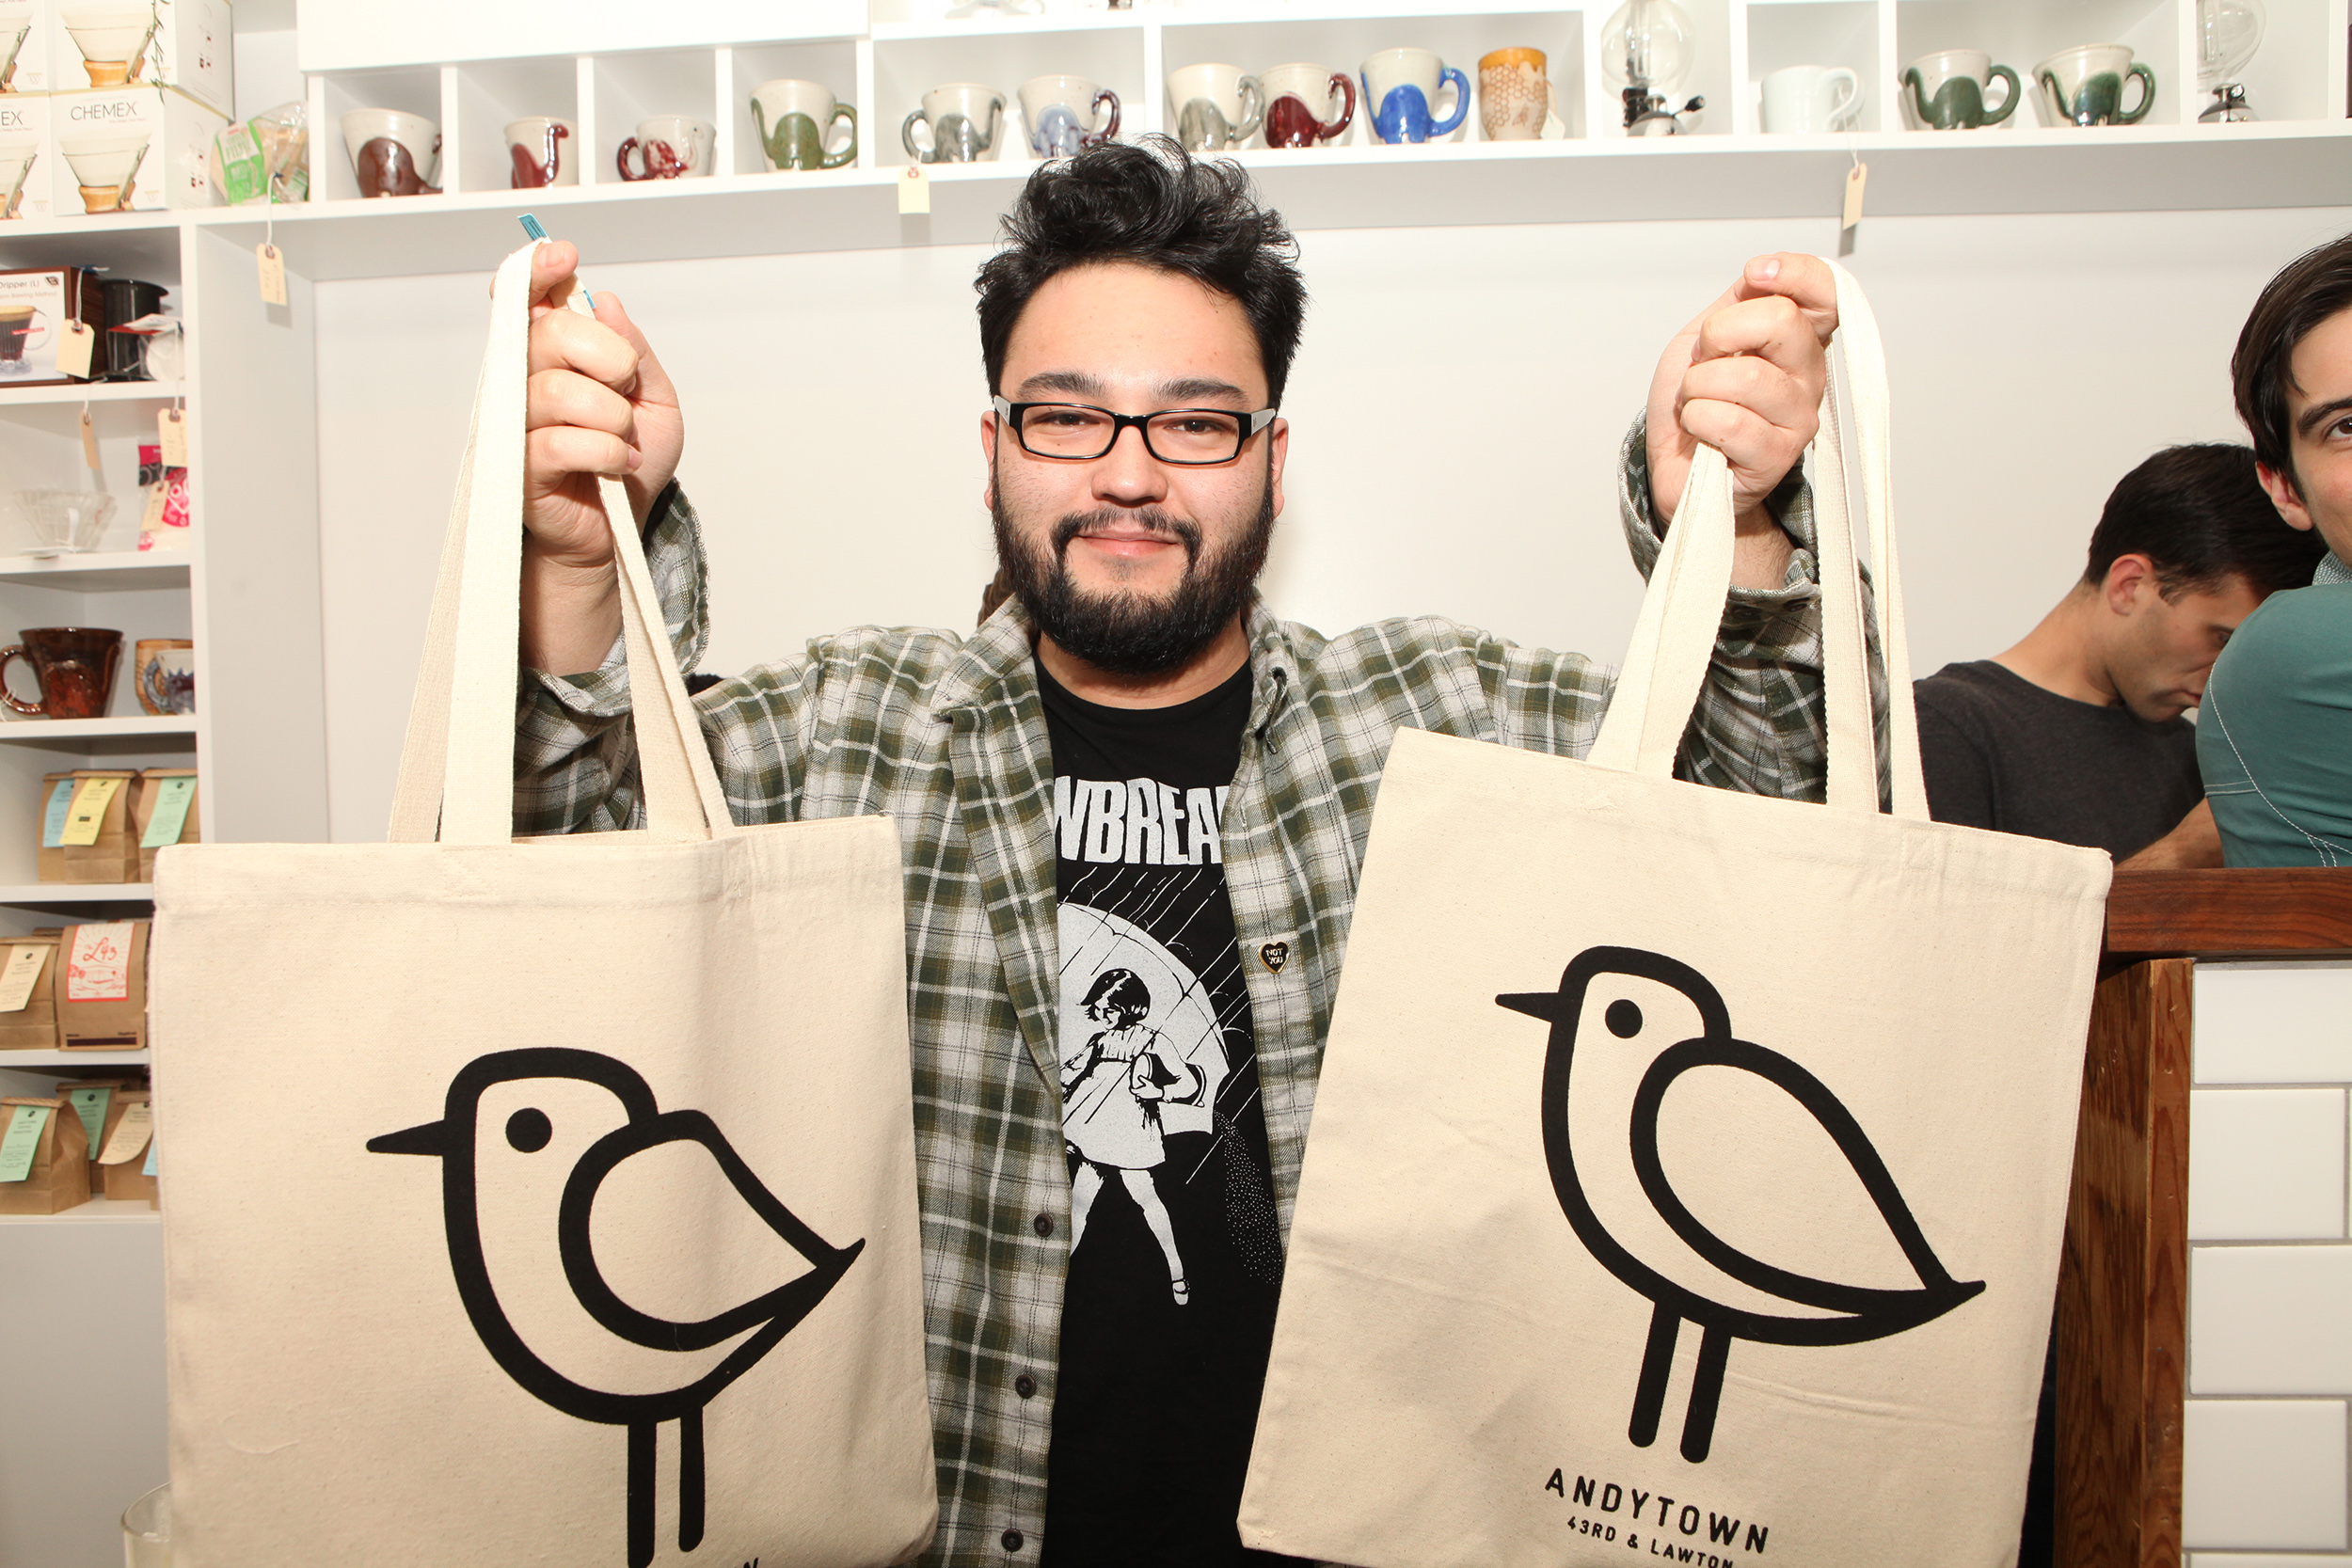 Some of Andytown's bird merch. (Photo courtesy Andytown Coffee Roasters.)